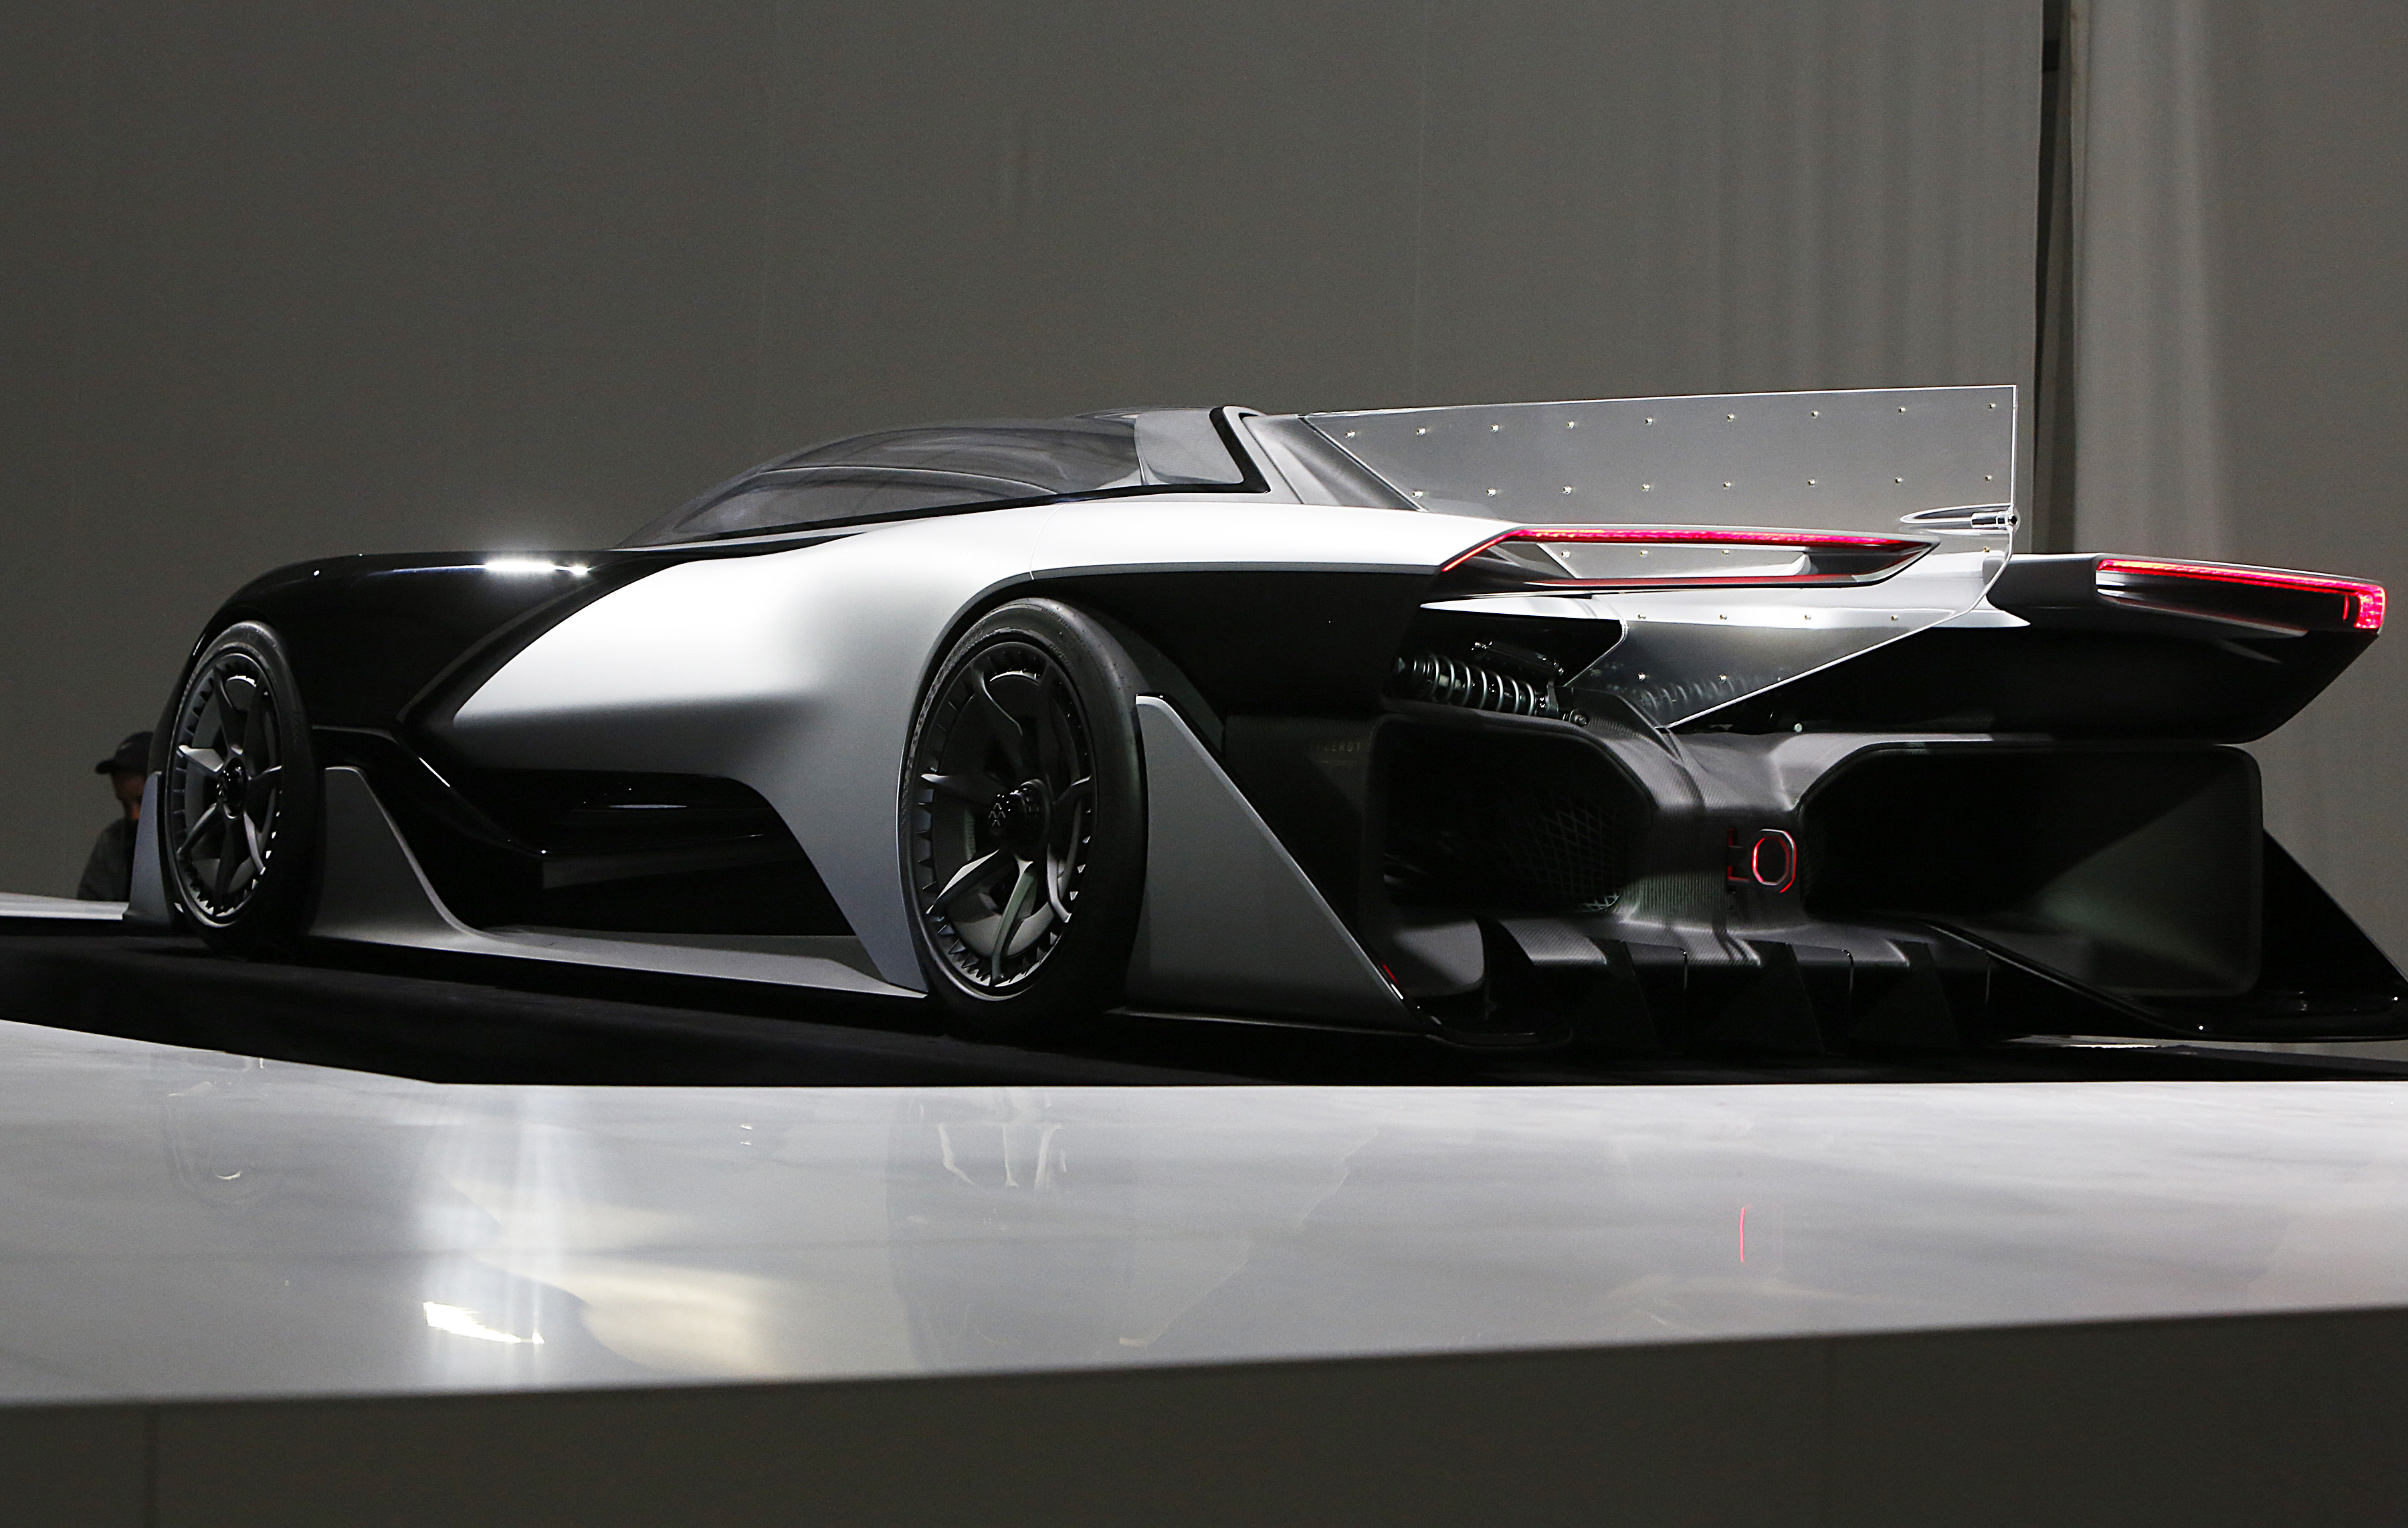 IMAGE DISTRIBUTED FOR FARADAY FUTURE - Faraday Future (FF) FFZERO1 Concept vehicle at FF's pre-CES reveal event in Las Vegas on Monday, Jan. 4, 2016. (Bizuayehu Tesfaye/ AP Images for Faraday Future)